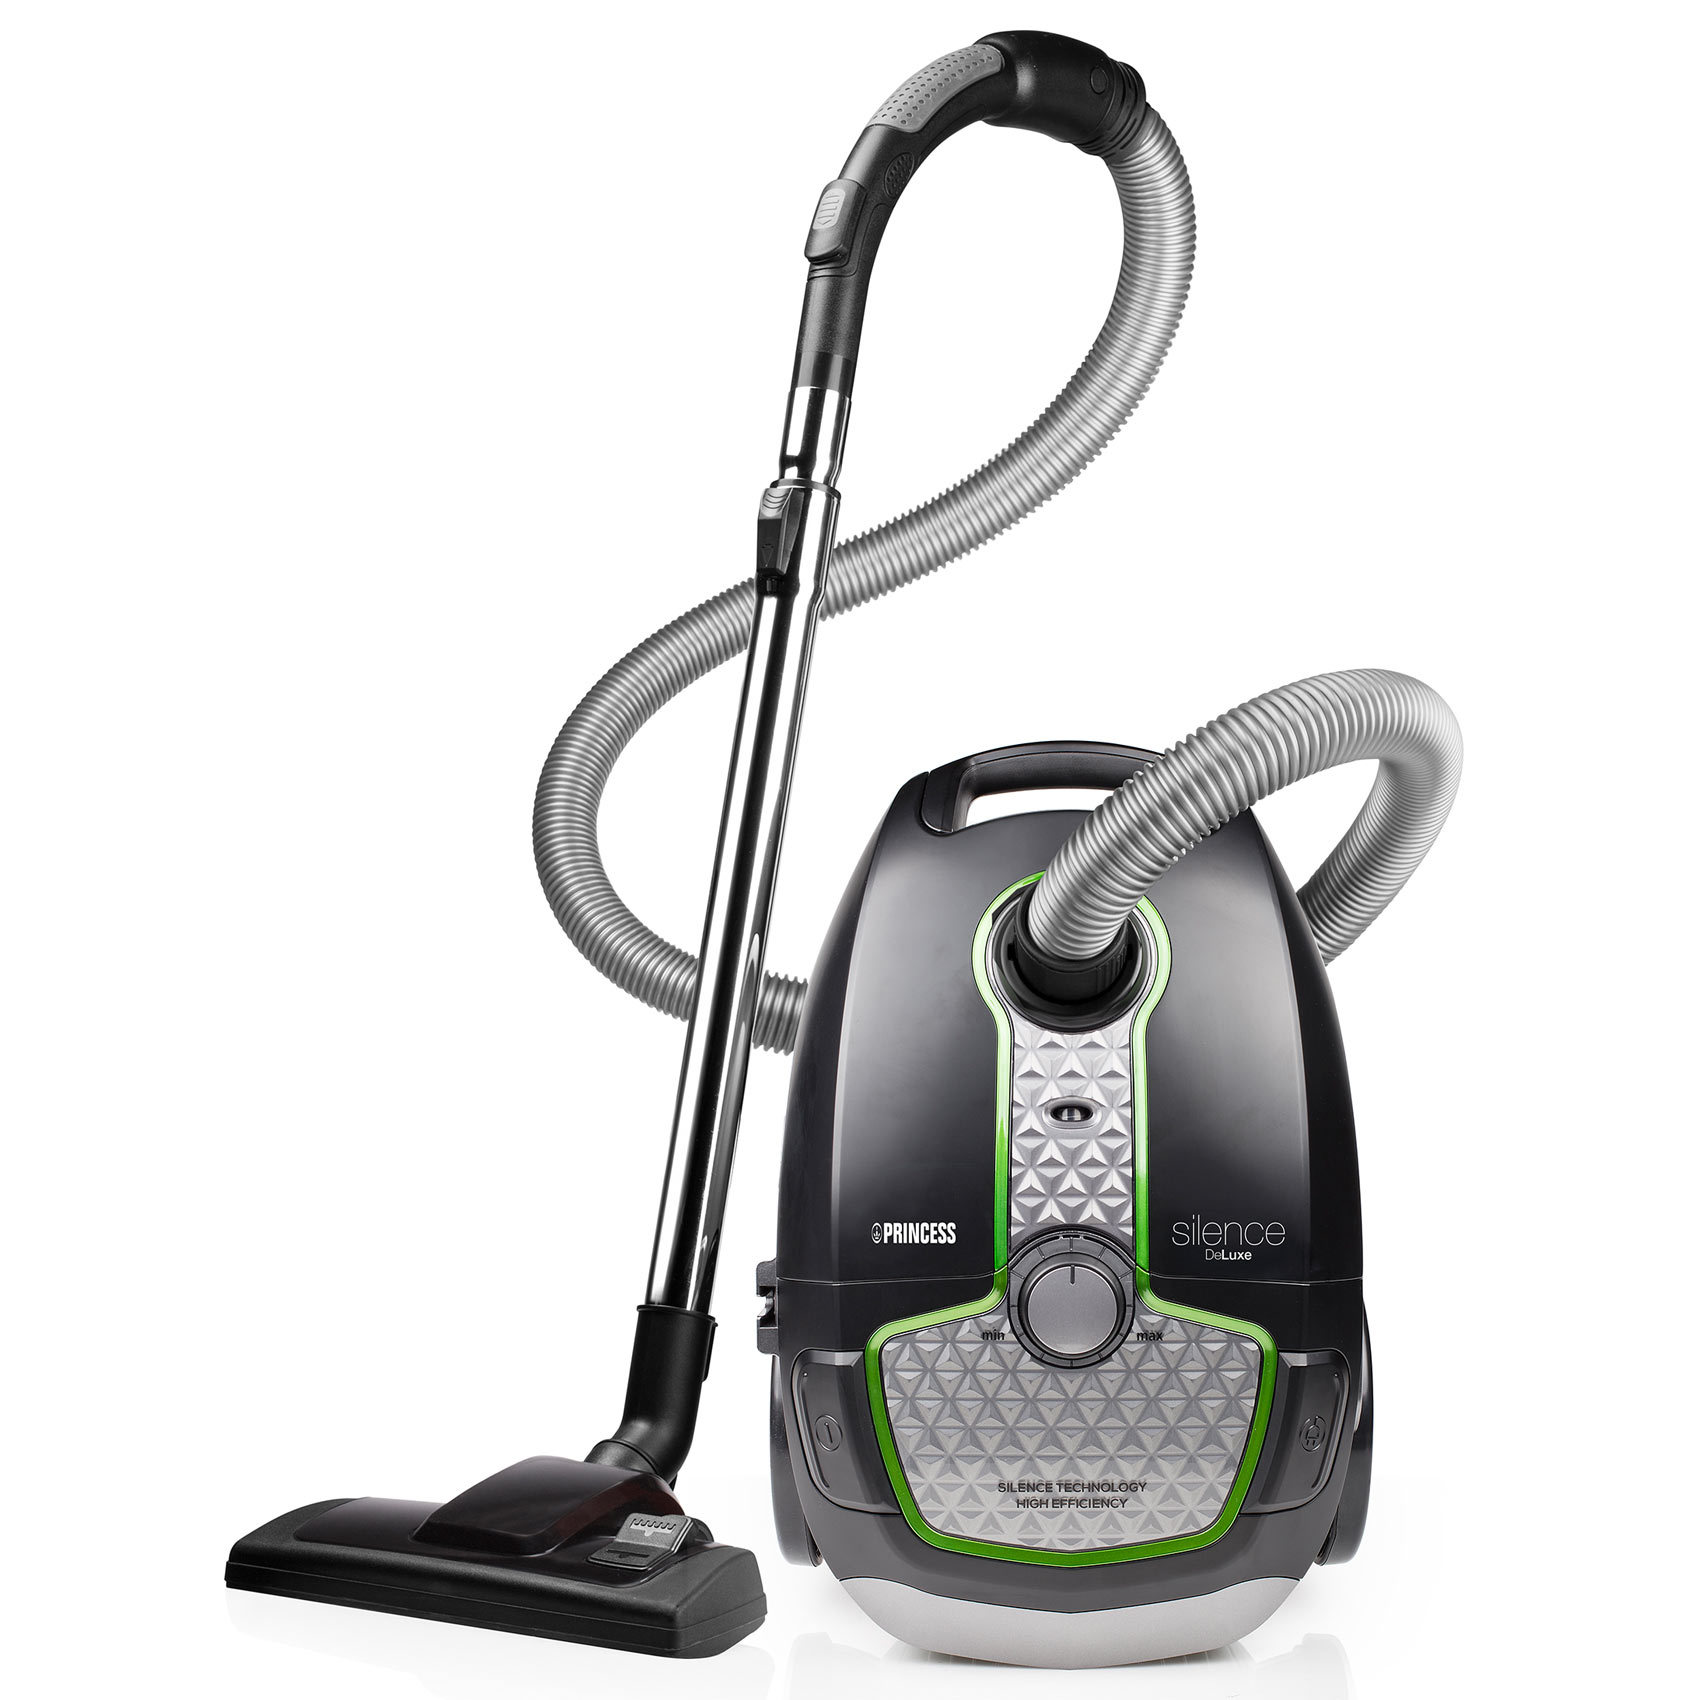 PRINCESS V-CLEANER PRN5000